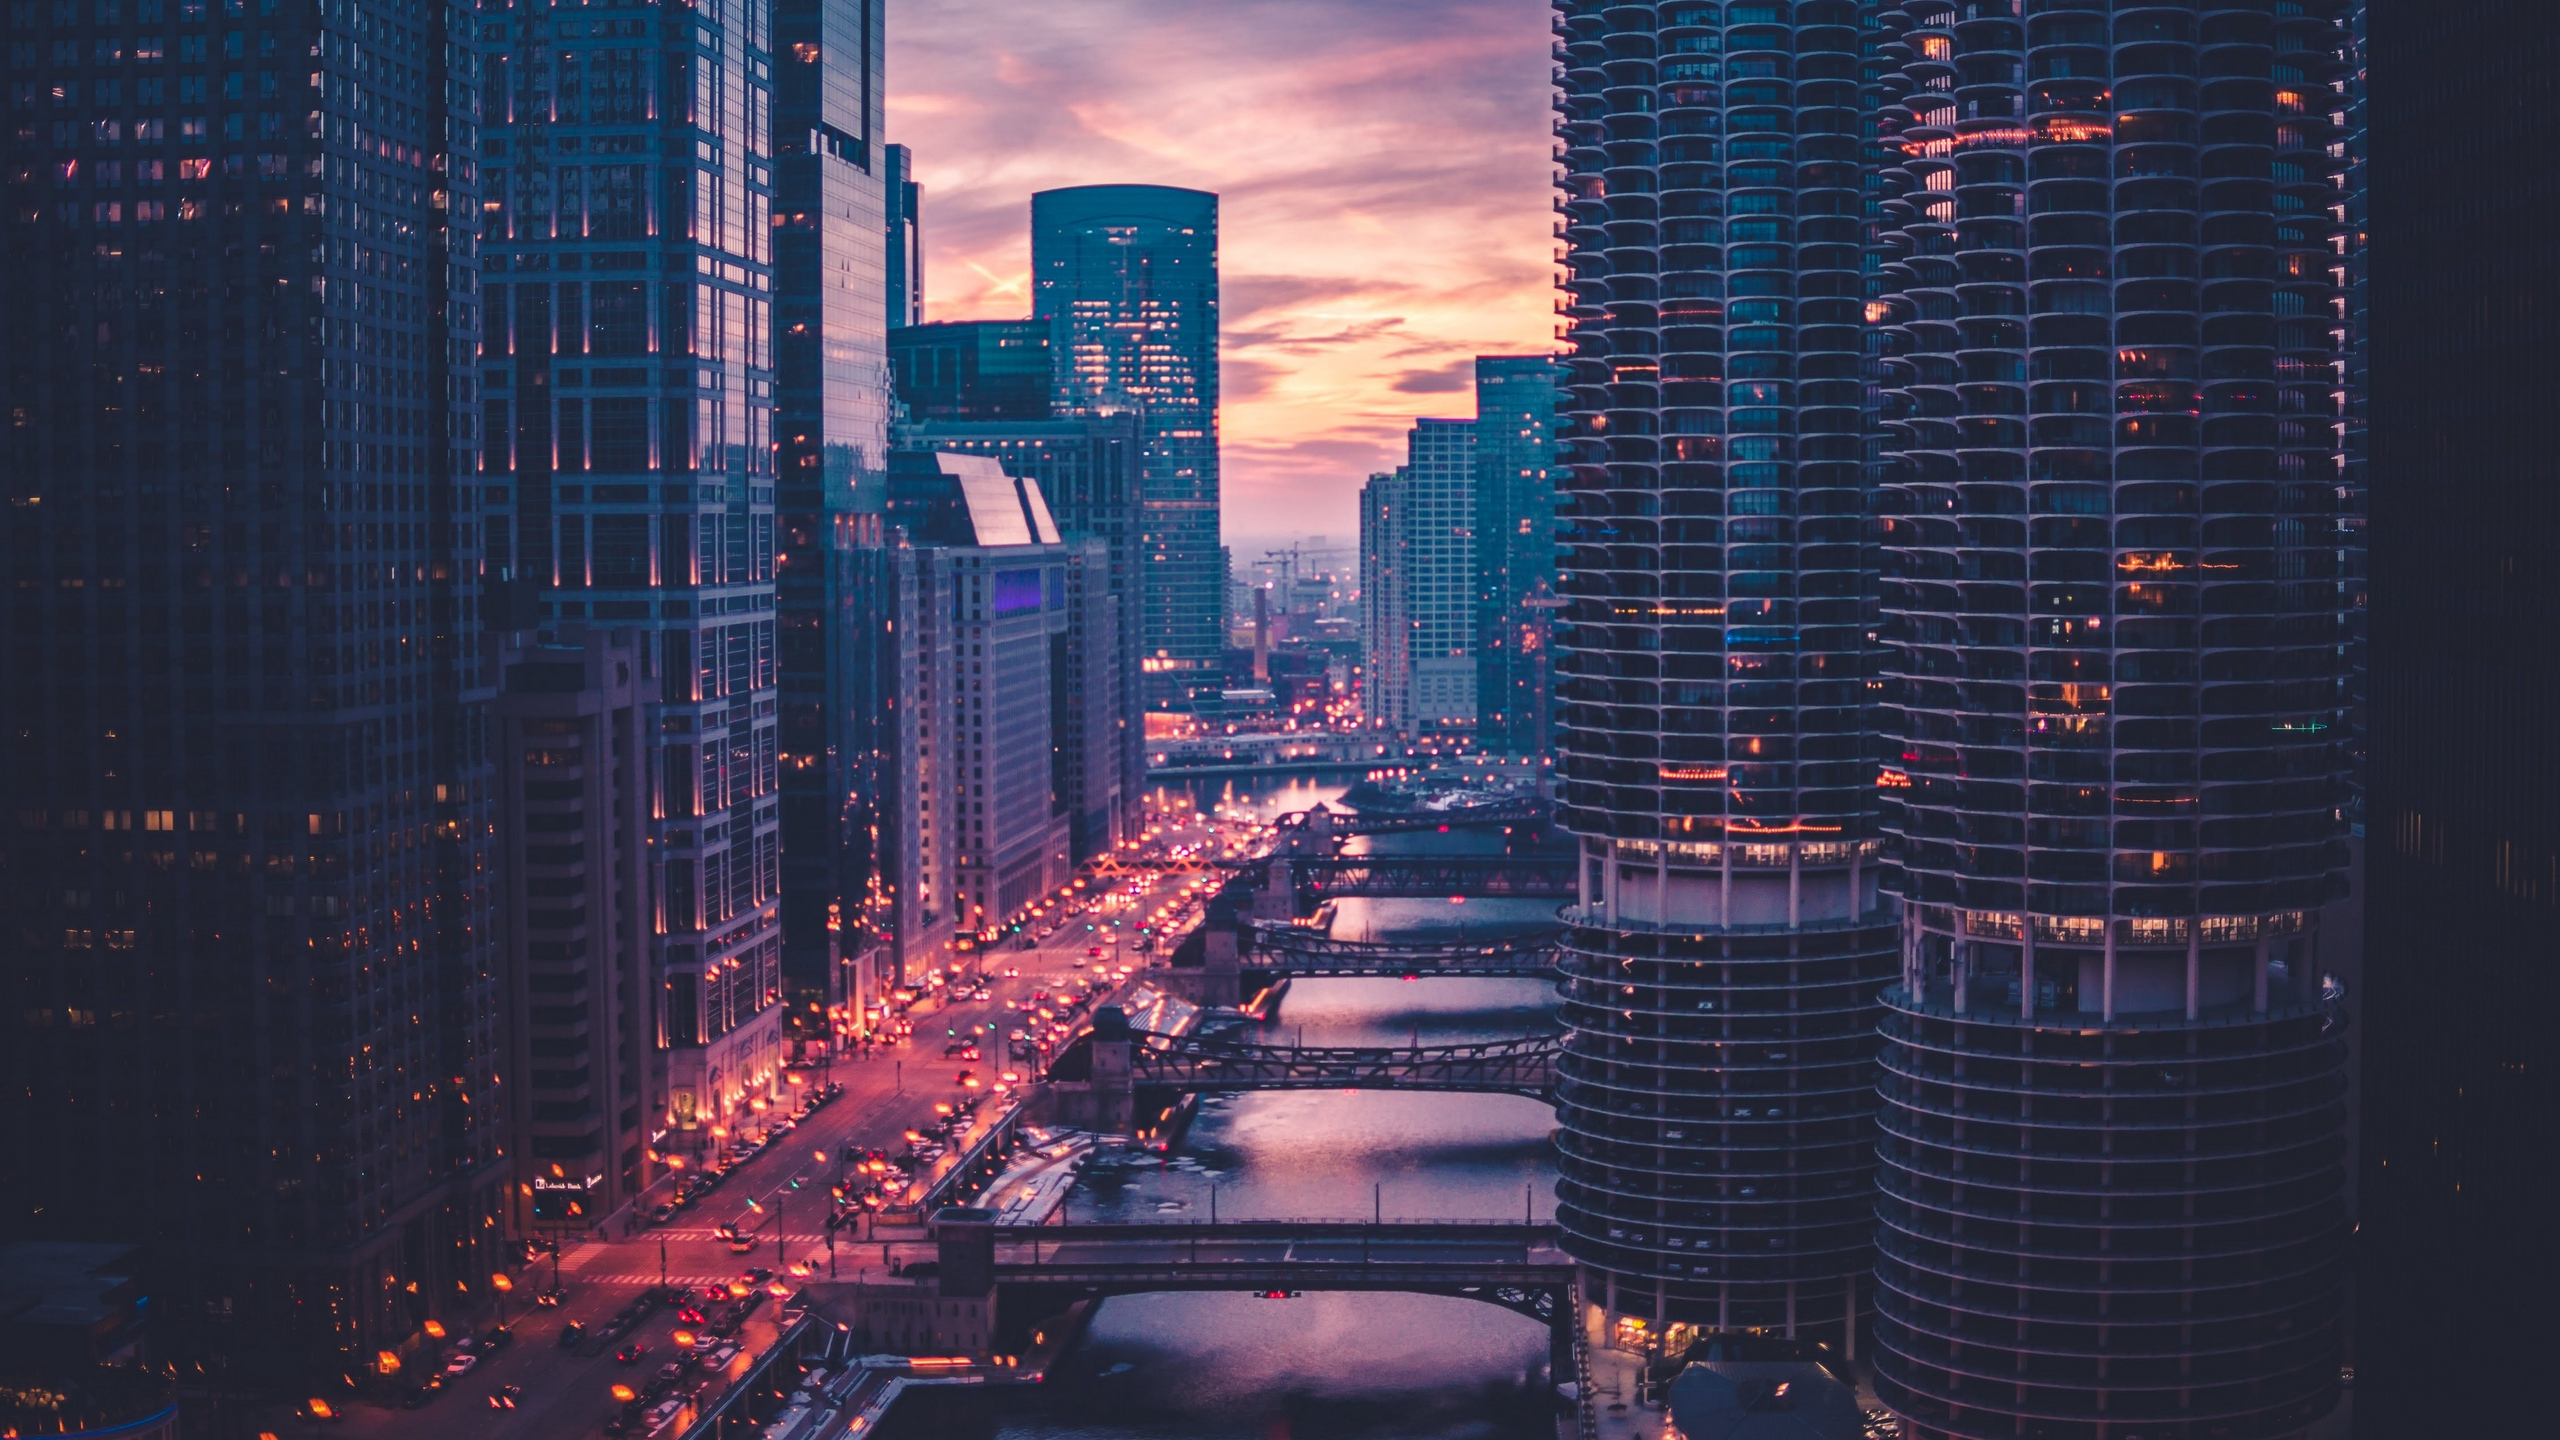 Wallpapers Hd Anime Wallpaper Of Chicago Skyscrapers Bridges Traffic